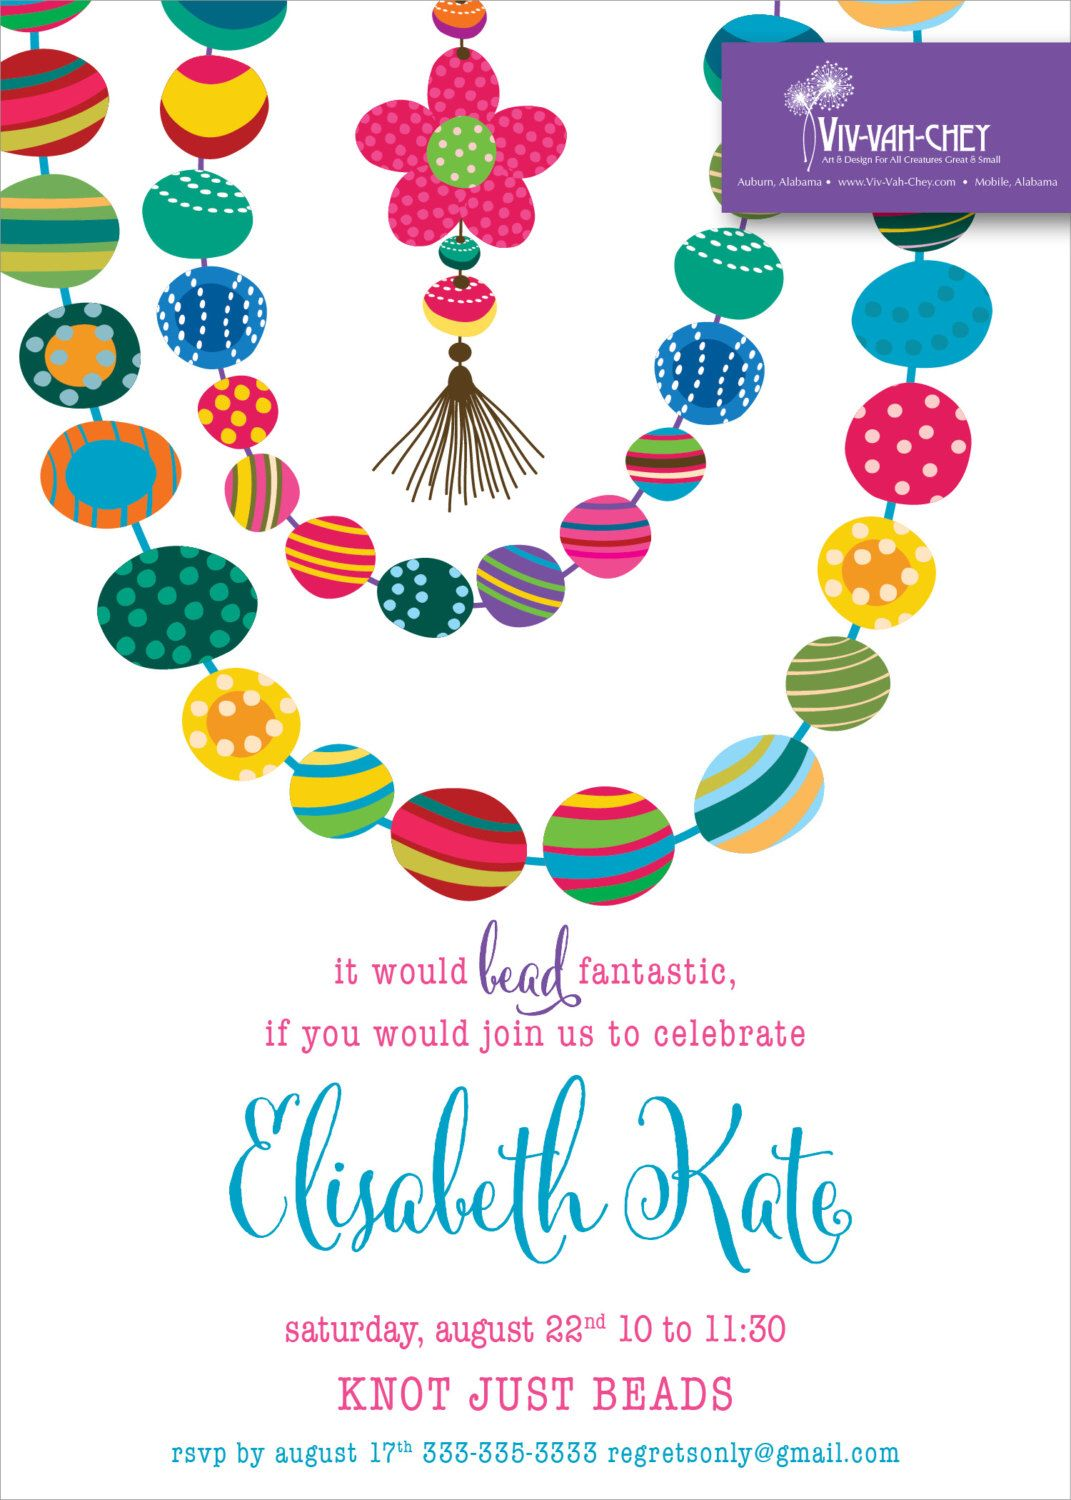 party invitations - jewelry party | design | pinterest | birthday, Party invitations